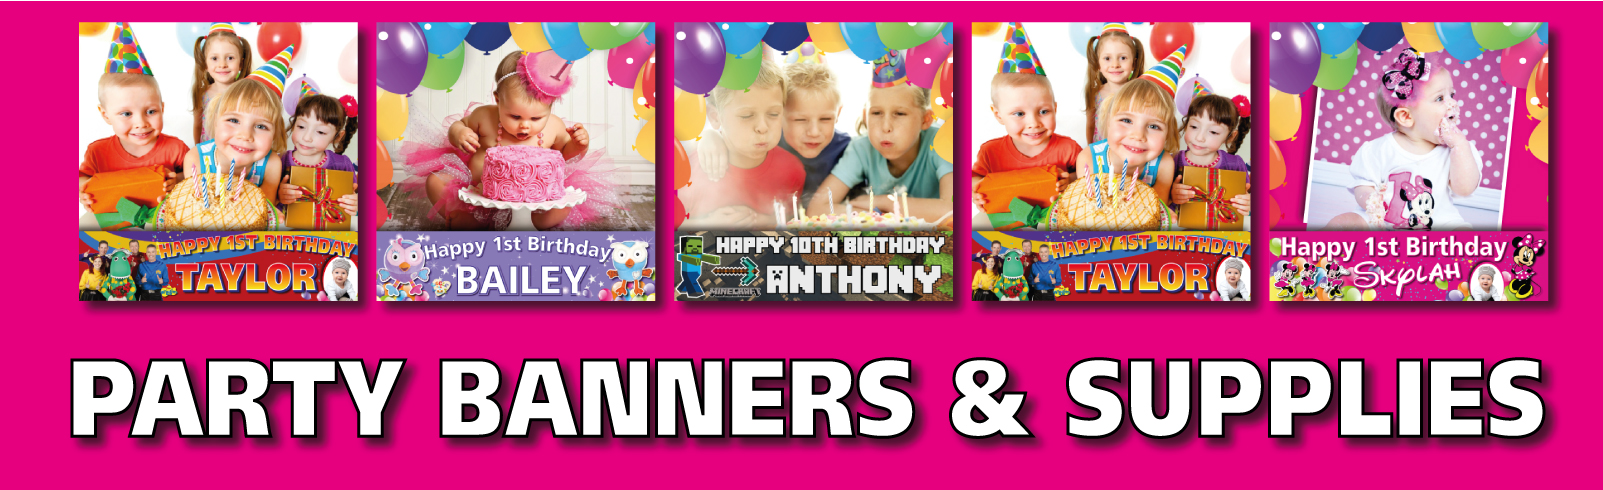 Personalised Party banners Decorations